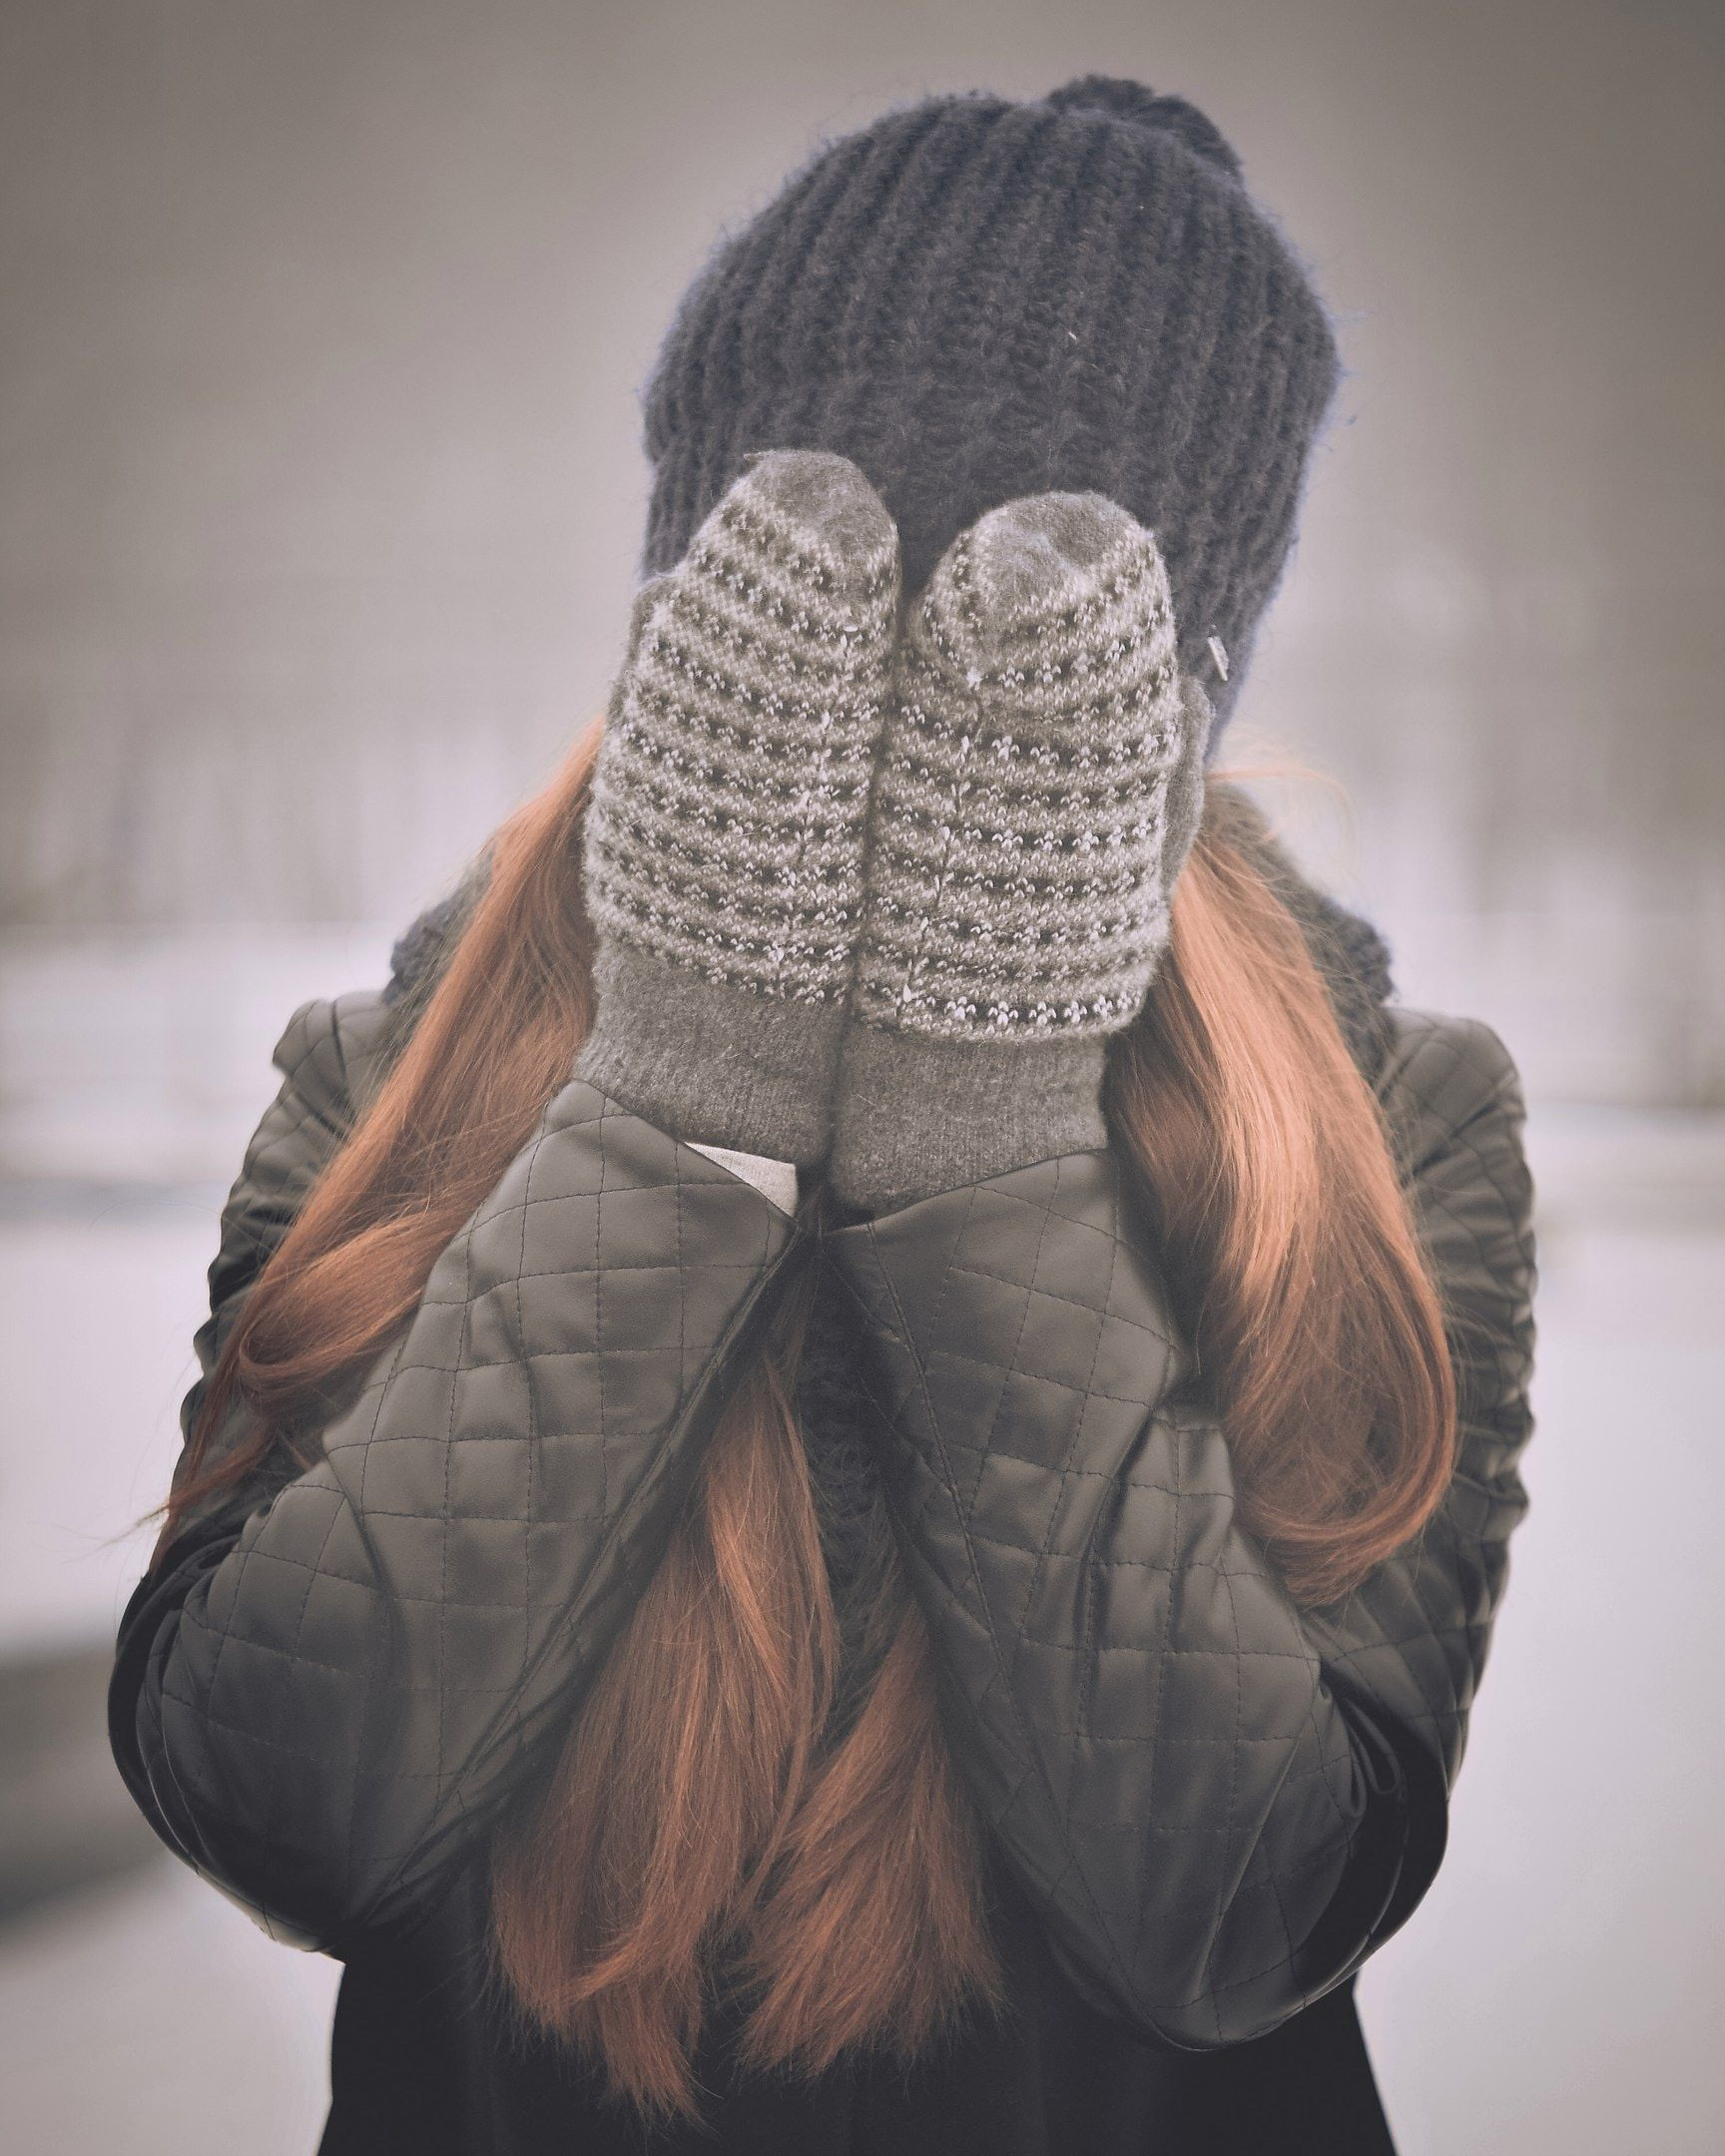 photo of girl with mittens